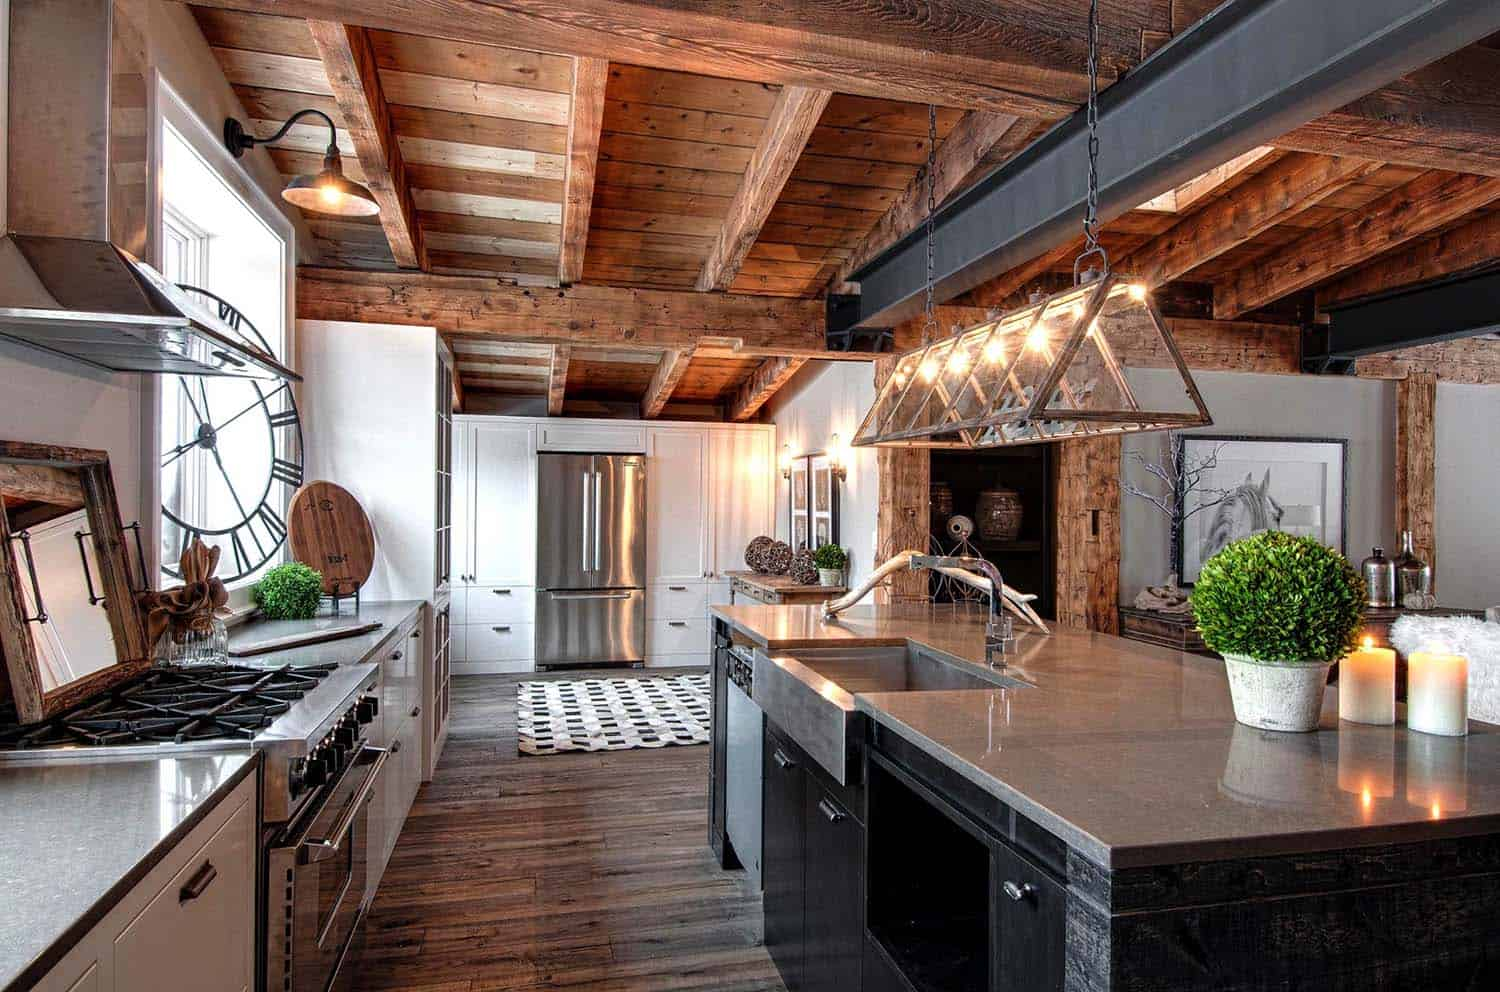 Rustic-Modern-Design-Timberworx Custom Homes-03-1 Kindesign